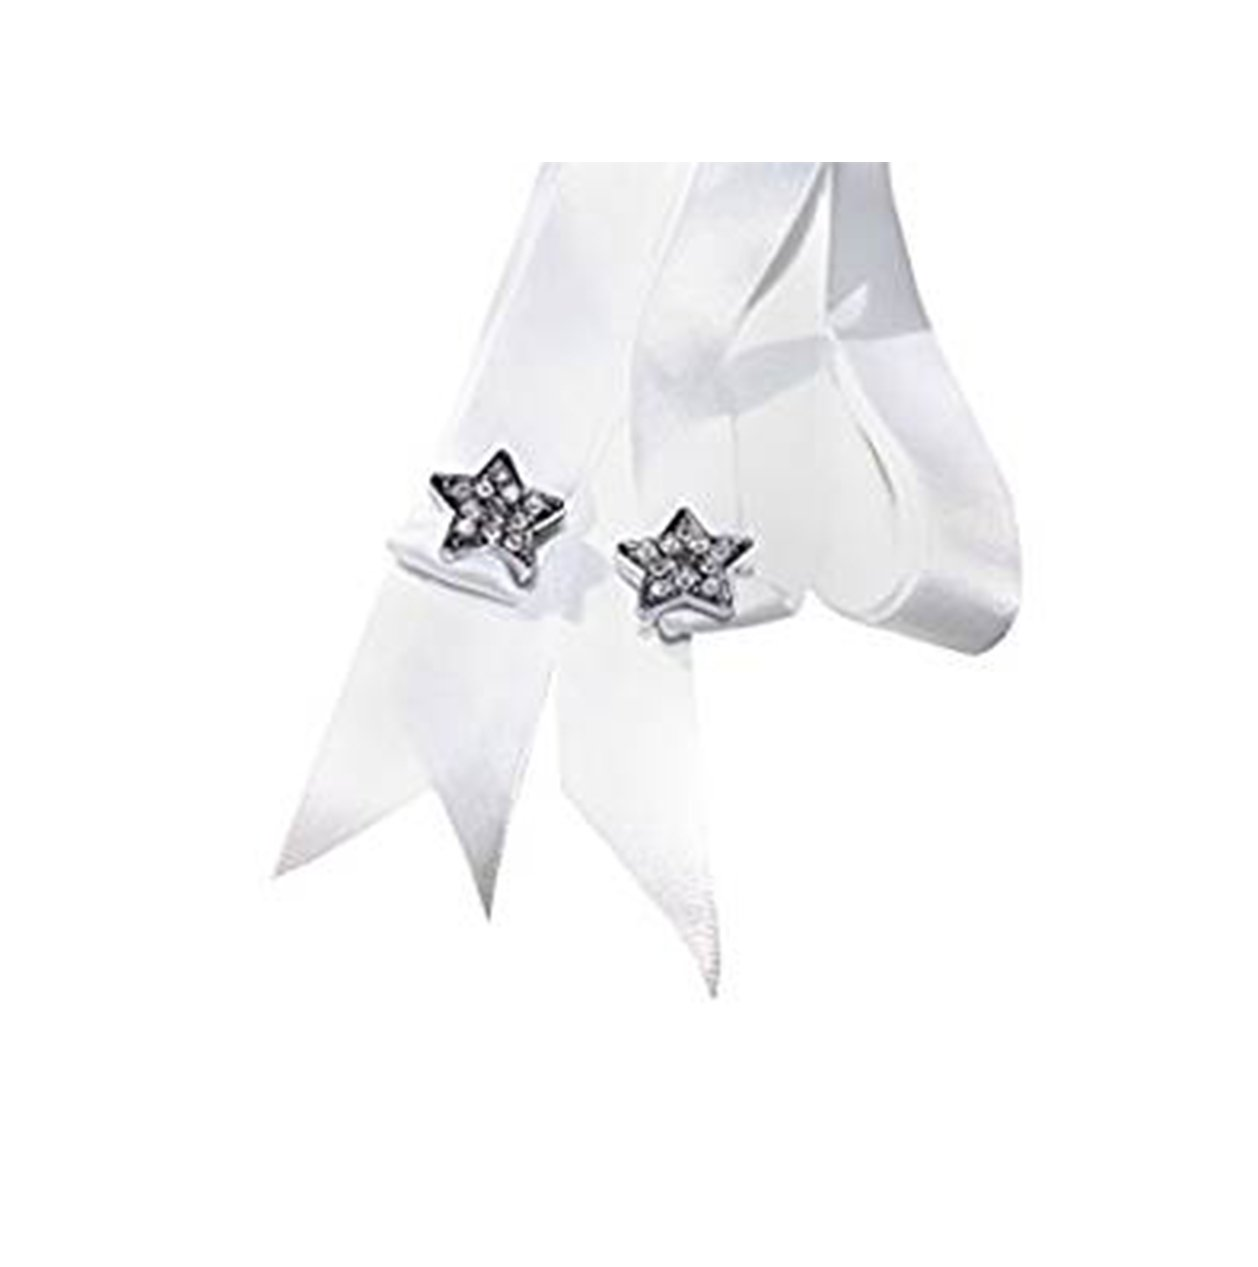 Stunning Crystal Star Shoe/Trainer Charms with a FREE Pair of Our White Satin Ribbon Laces (Women's Fits Shoe Size 3 to 8)